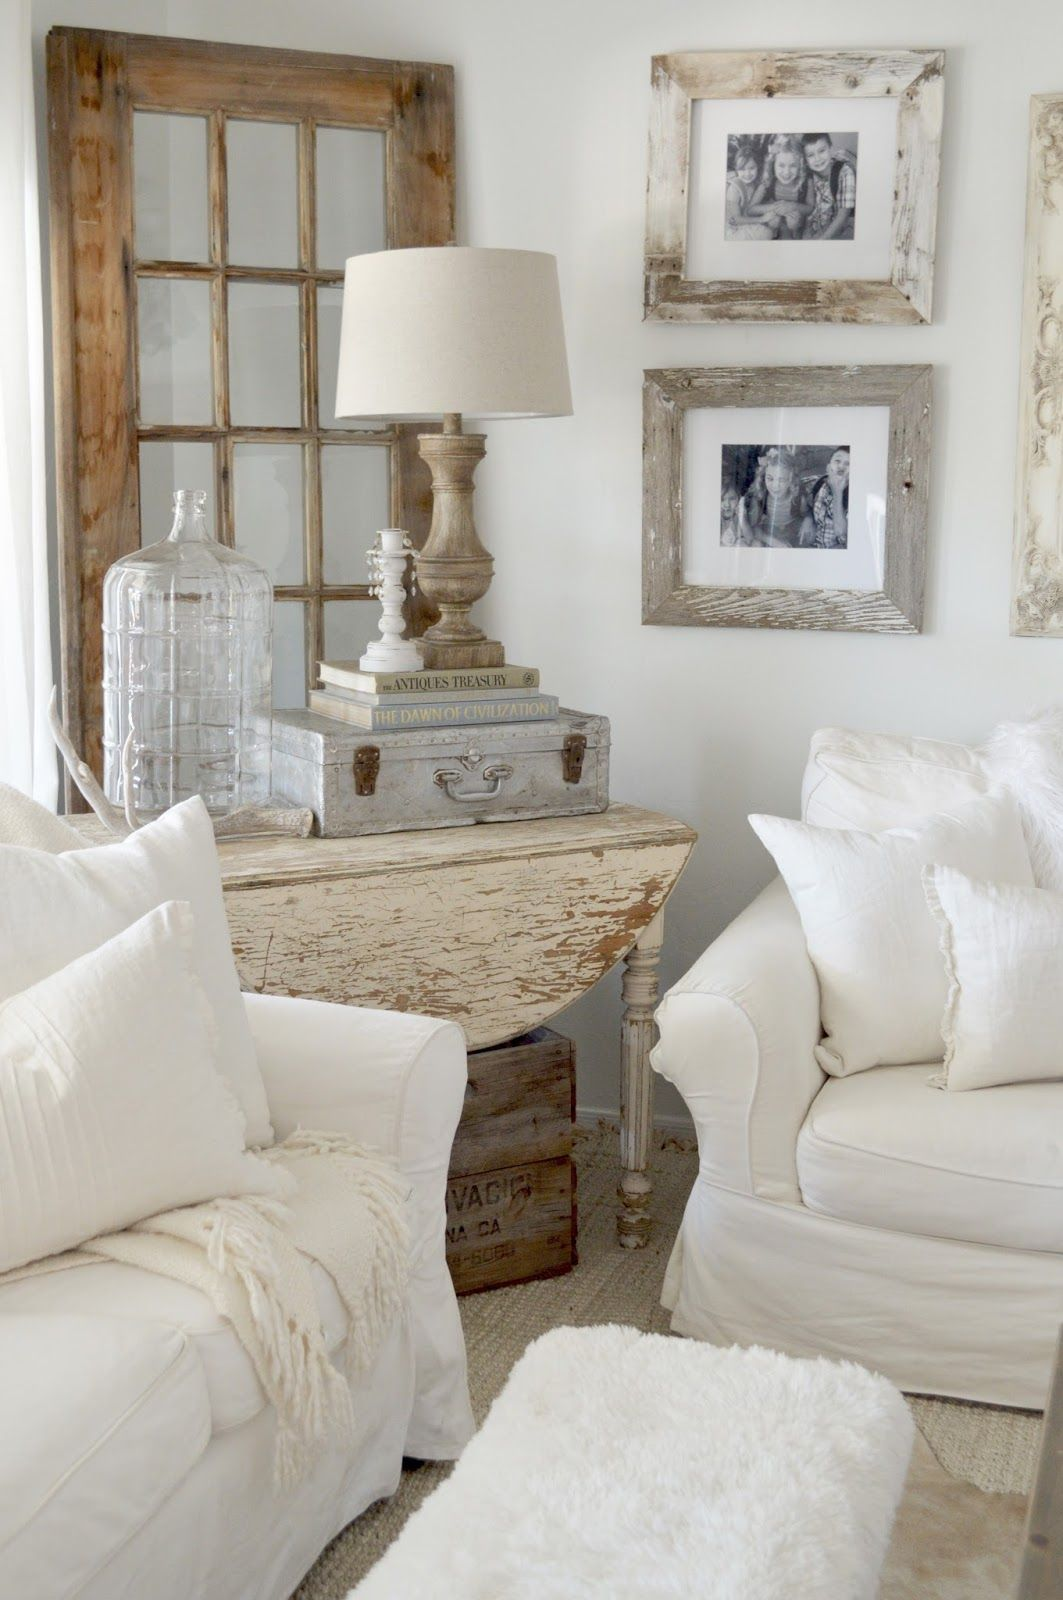 Fullsize Of Country Living Home Decorating